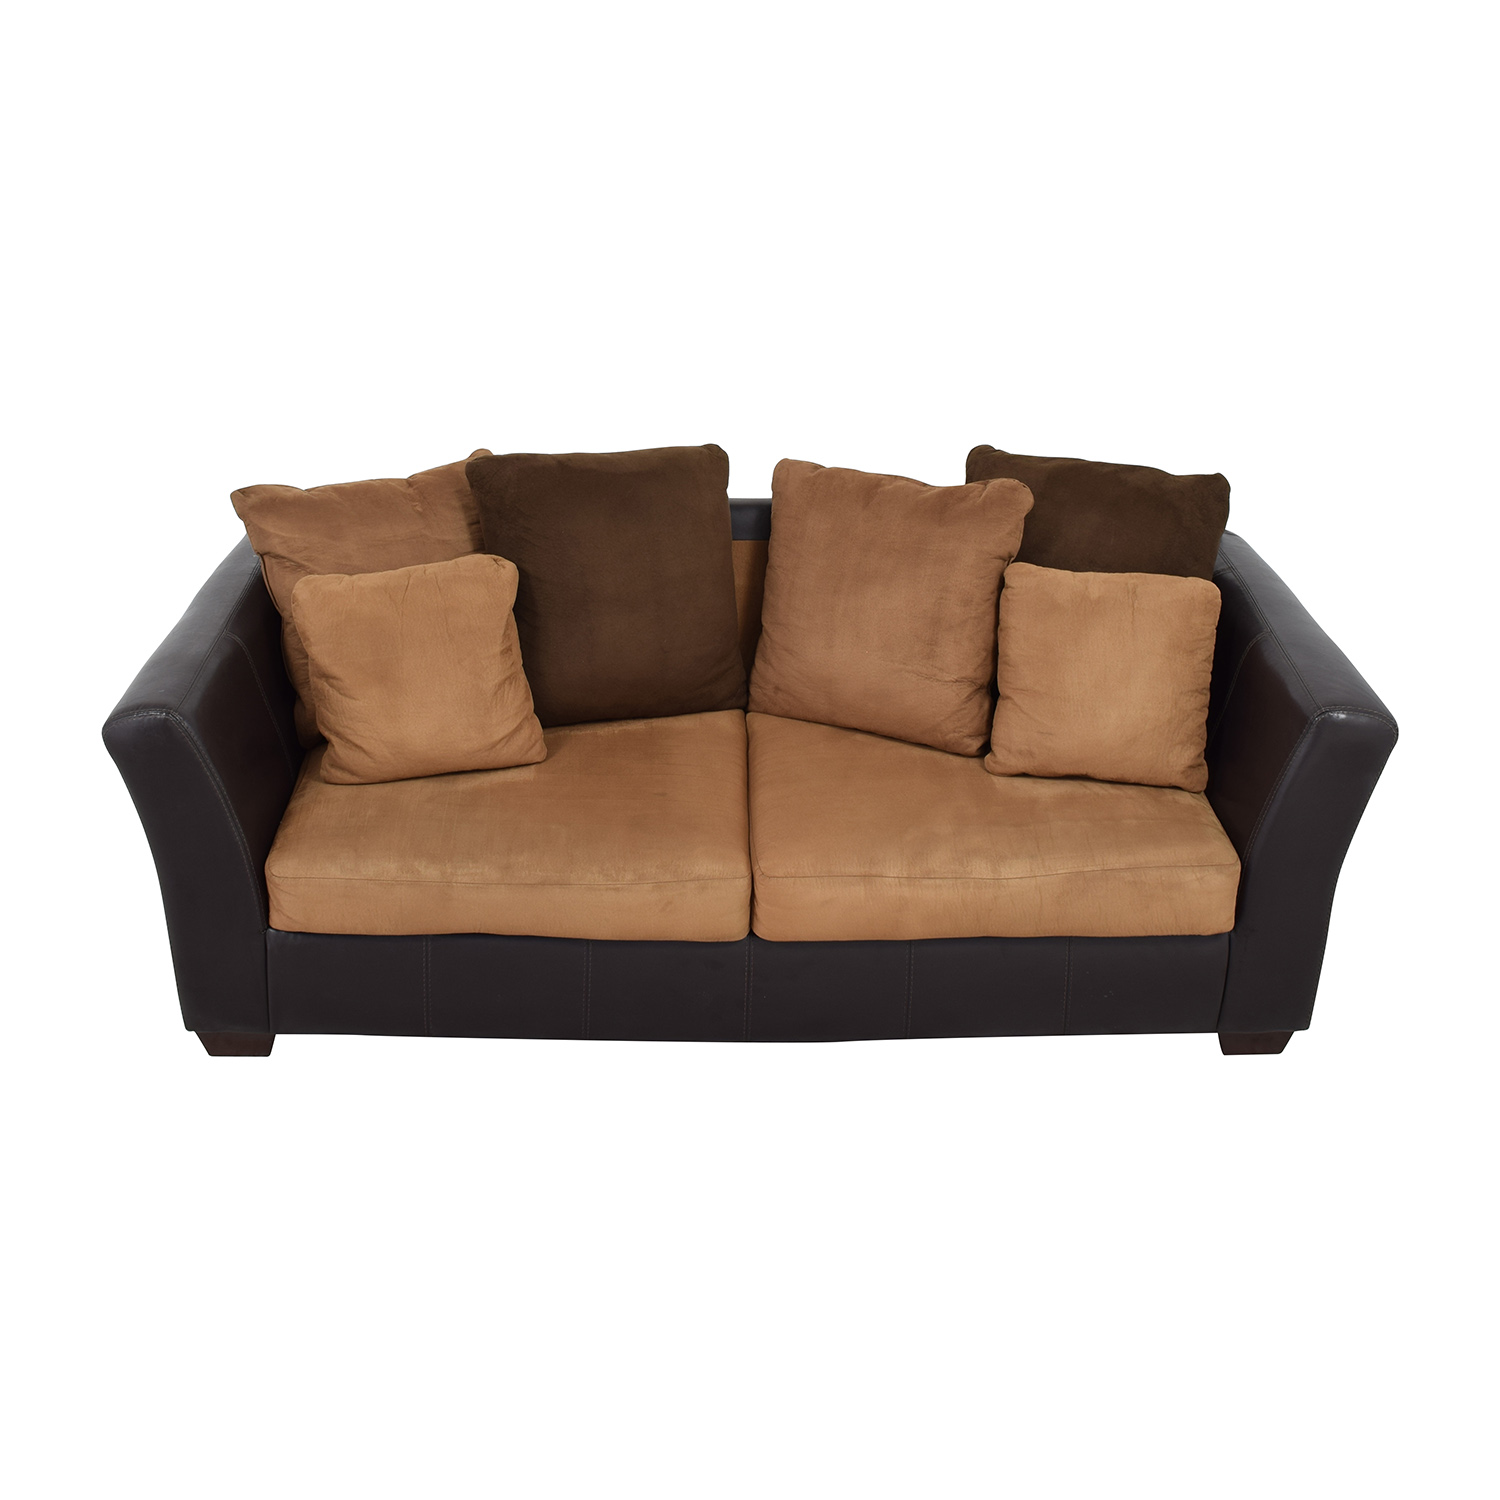 buy Ashley Furniture Sofa with Brown Throw Pillows Ashley Furniture Sofas